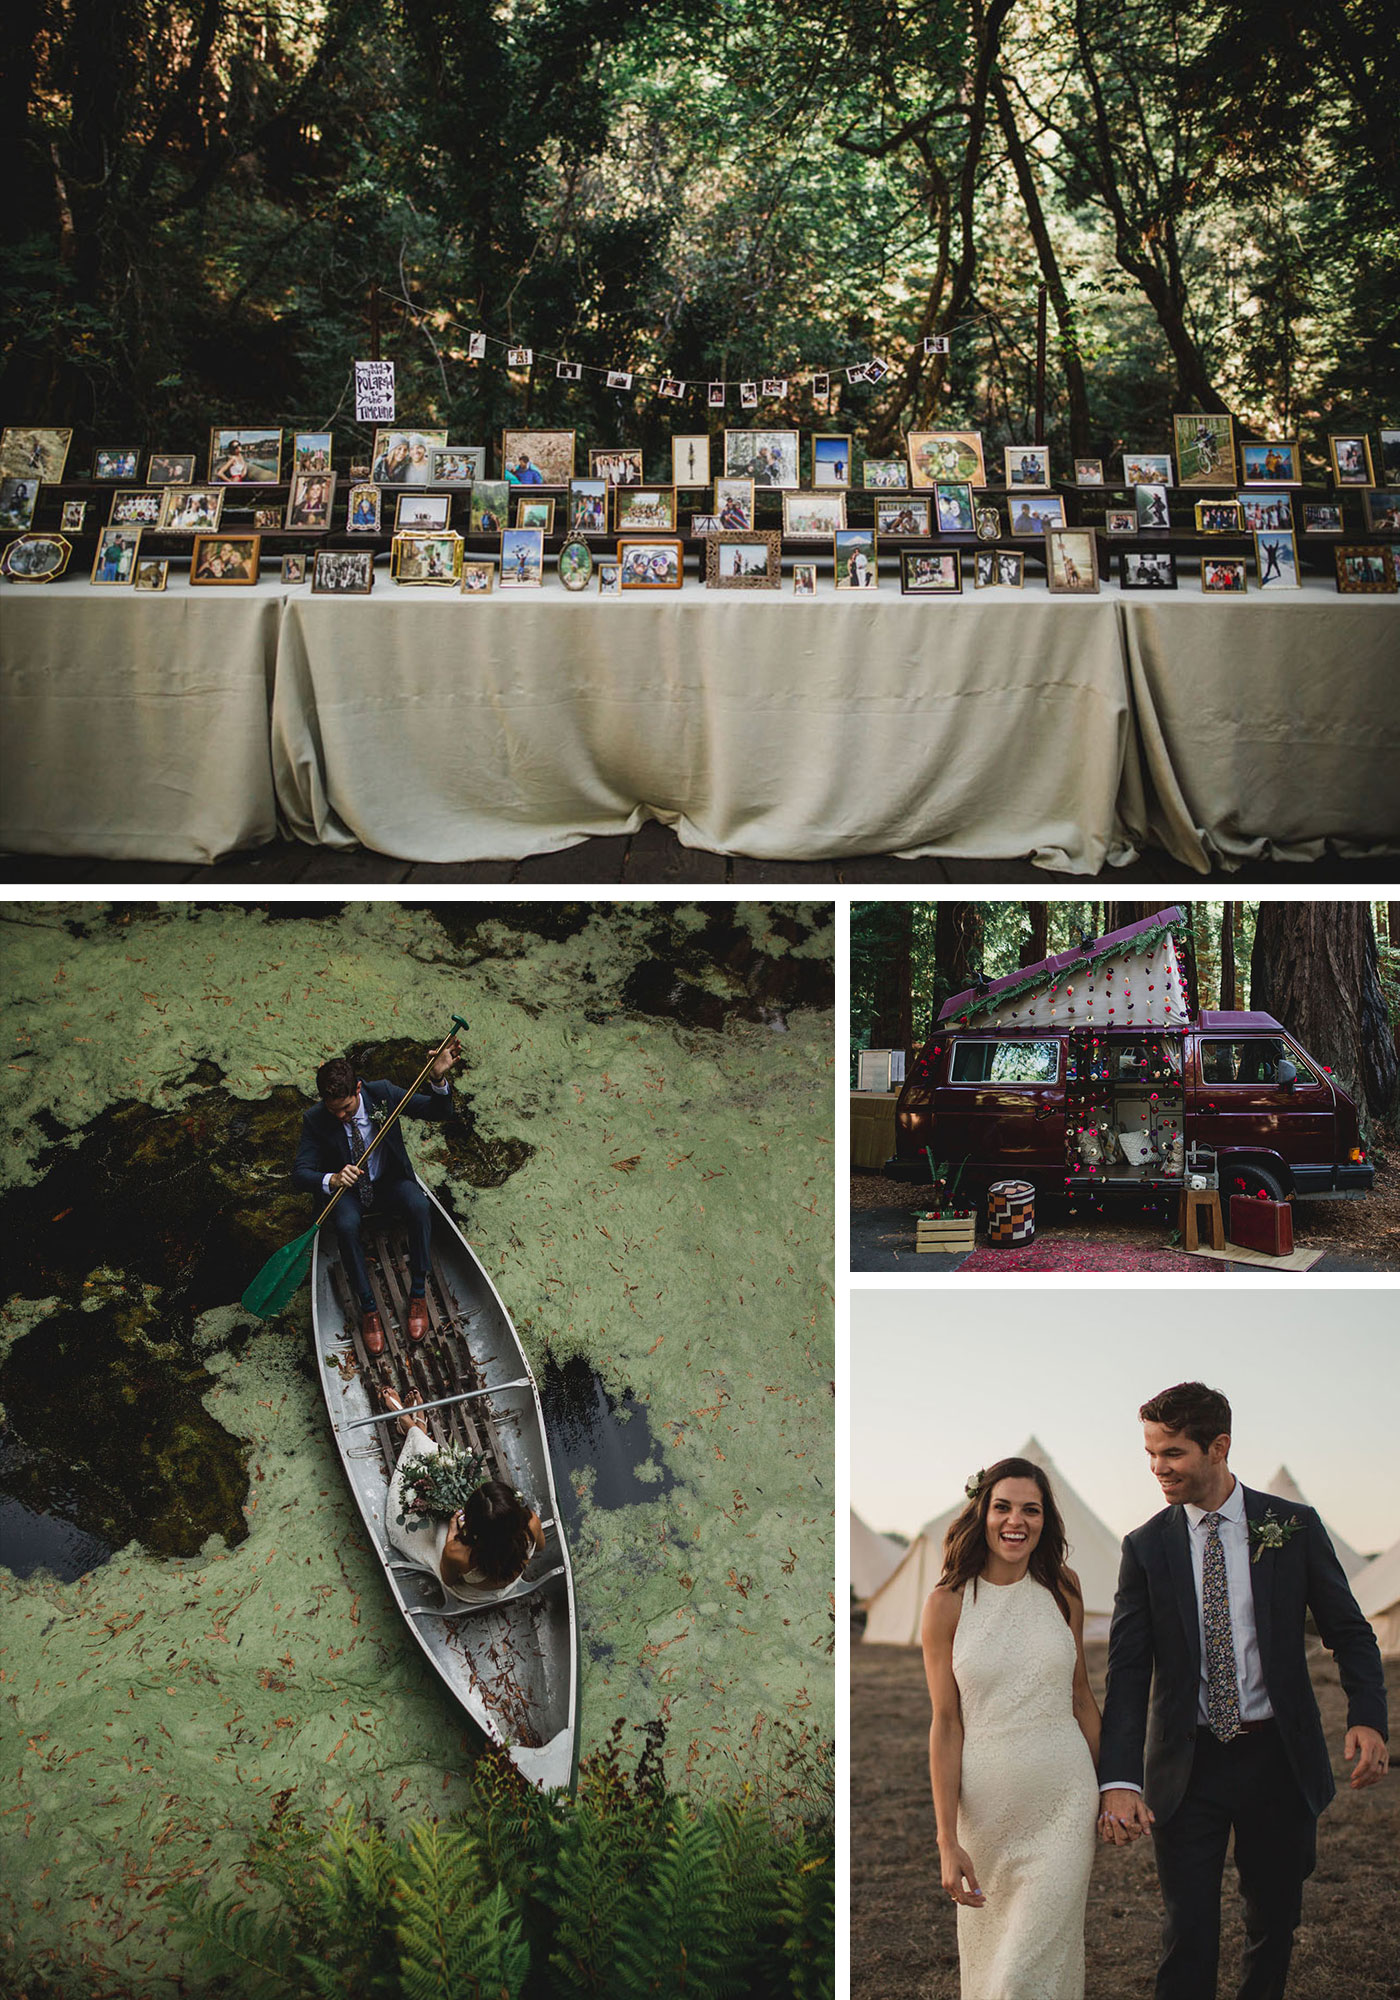 The Bride That Worked at Pinterest: The Most DIY-Filled Wedding, EVER!